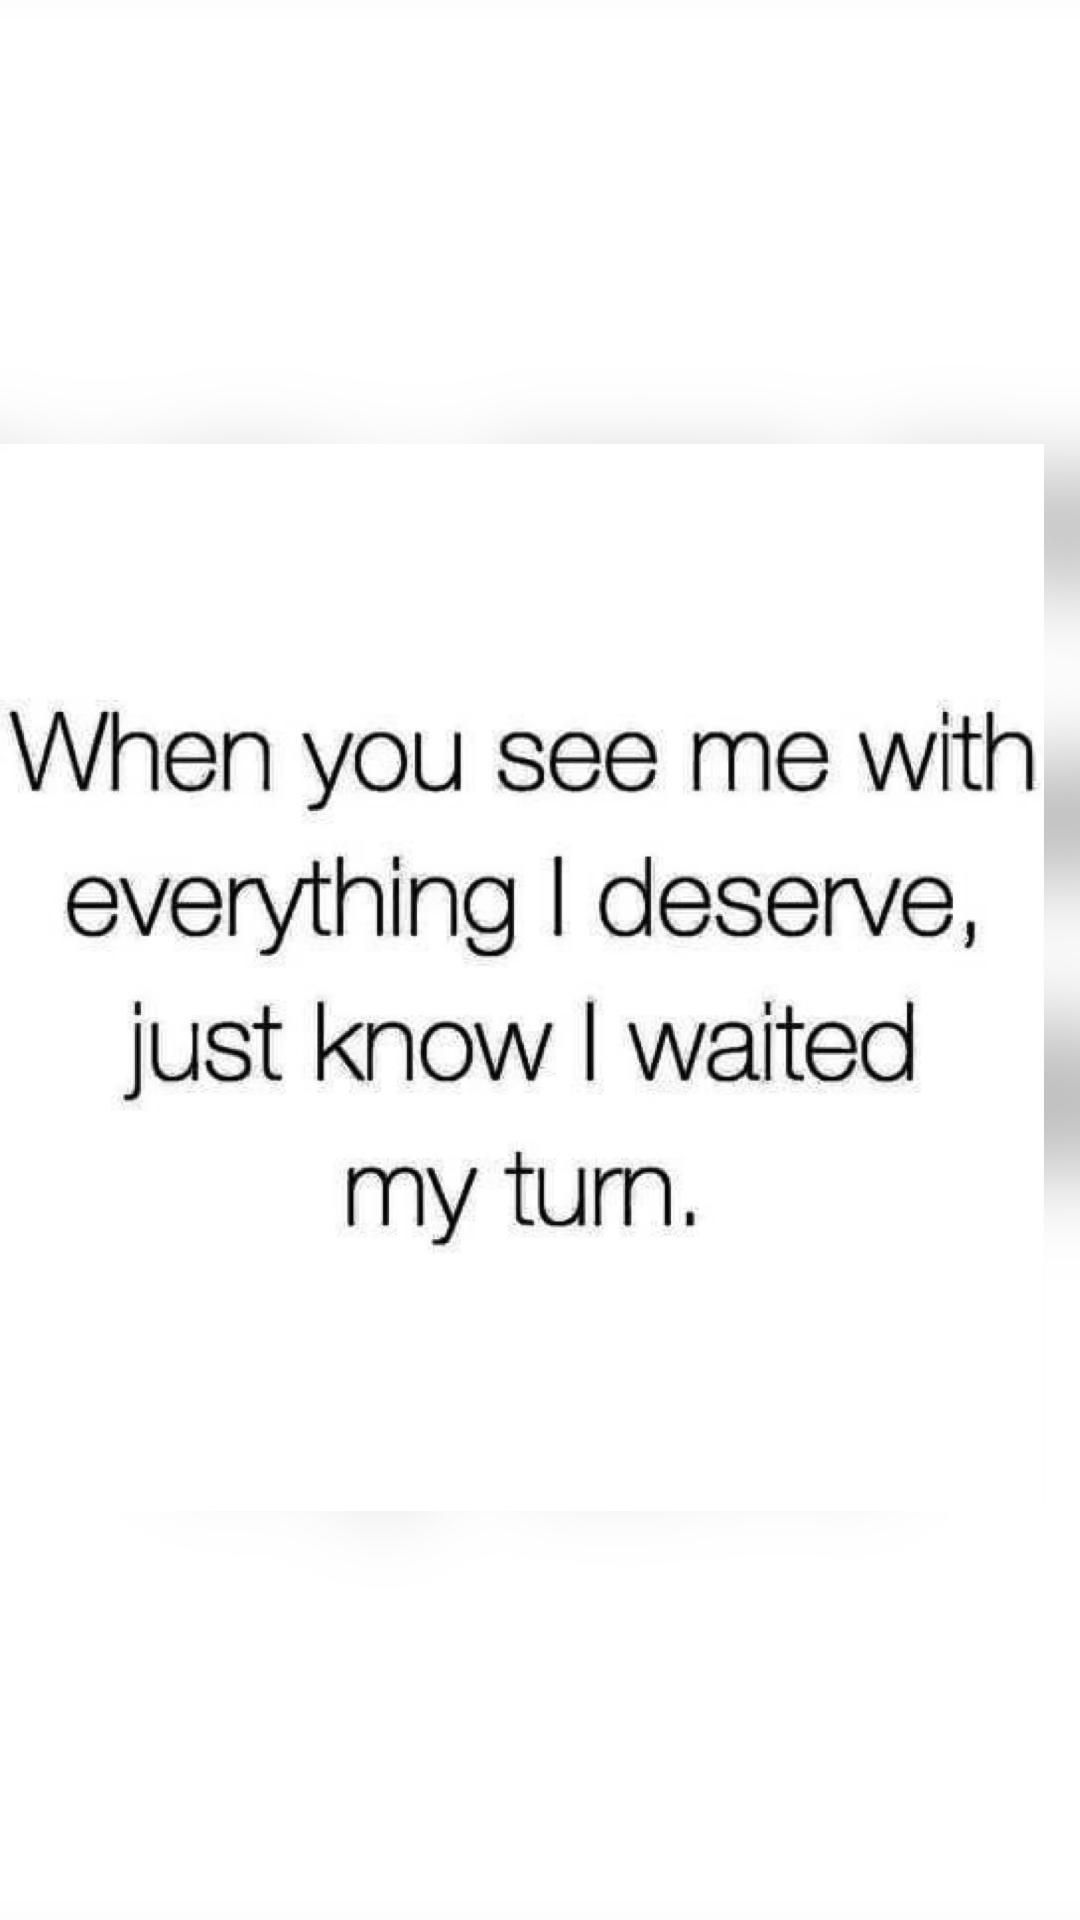 Know your worth. Pray. And wait